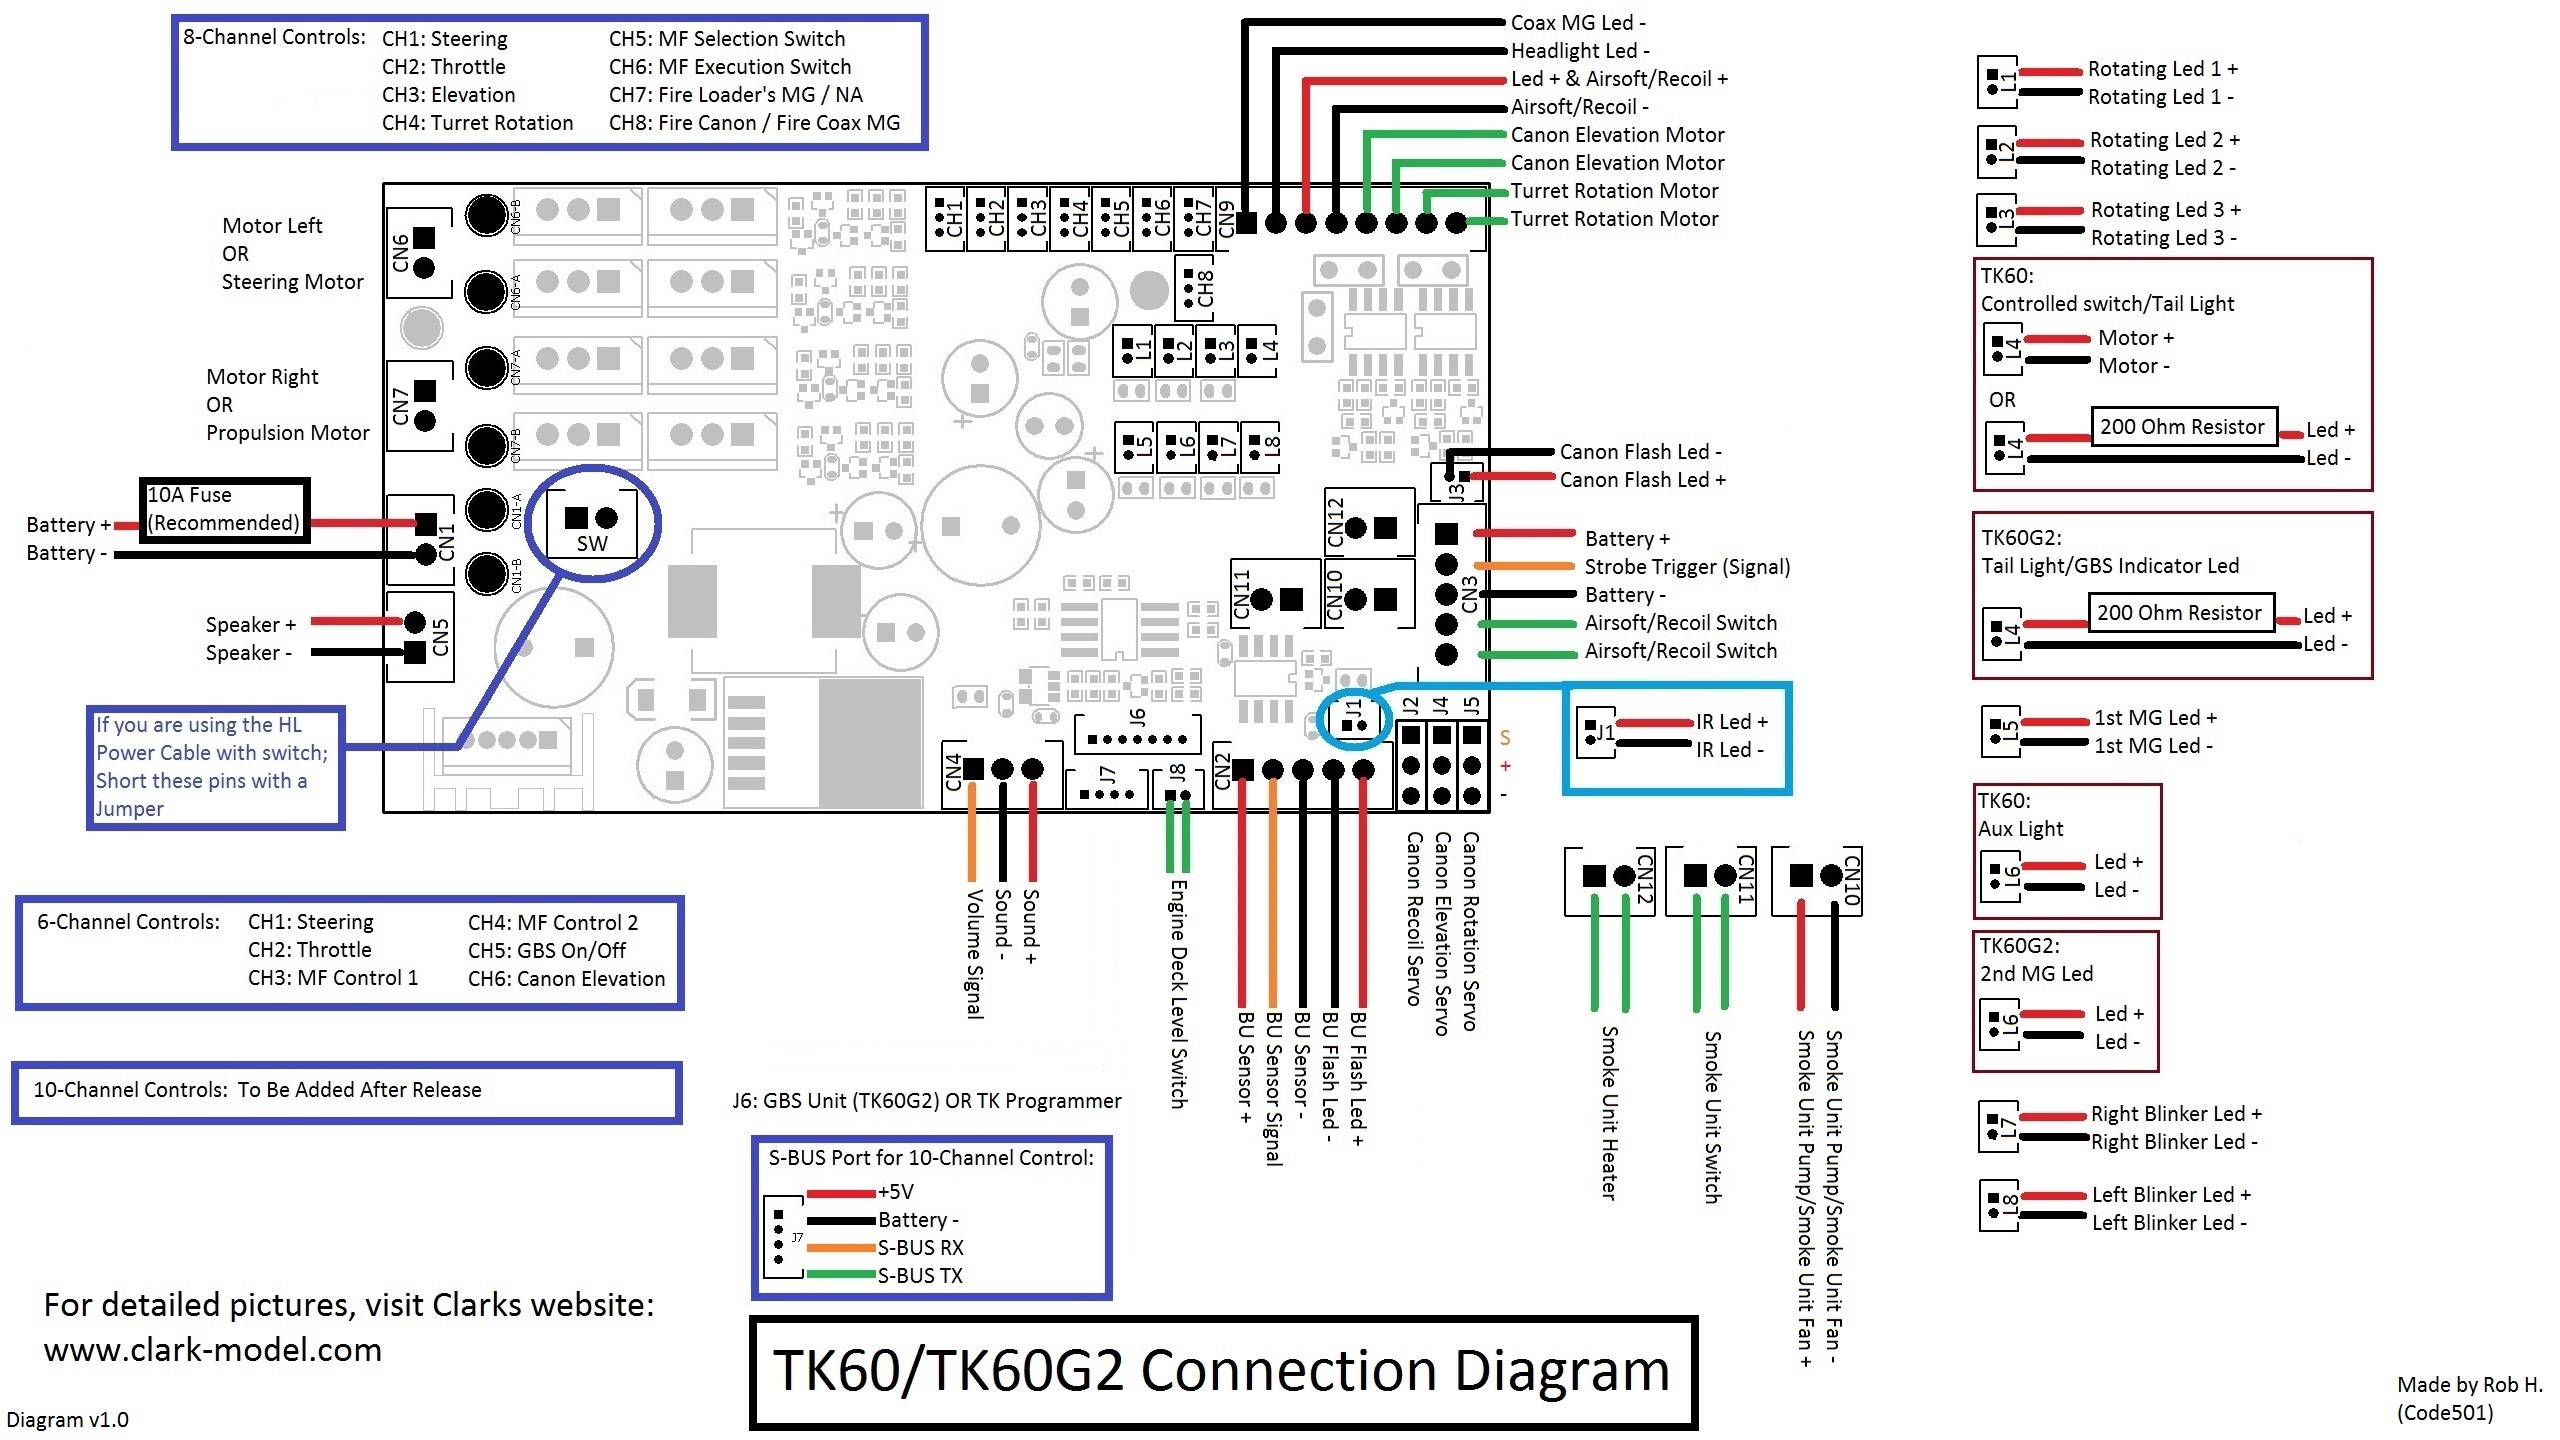 Connection diagram( Click to download full size image )